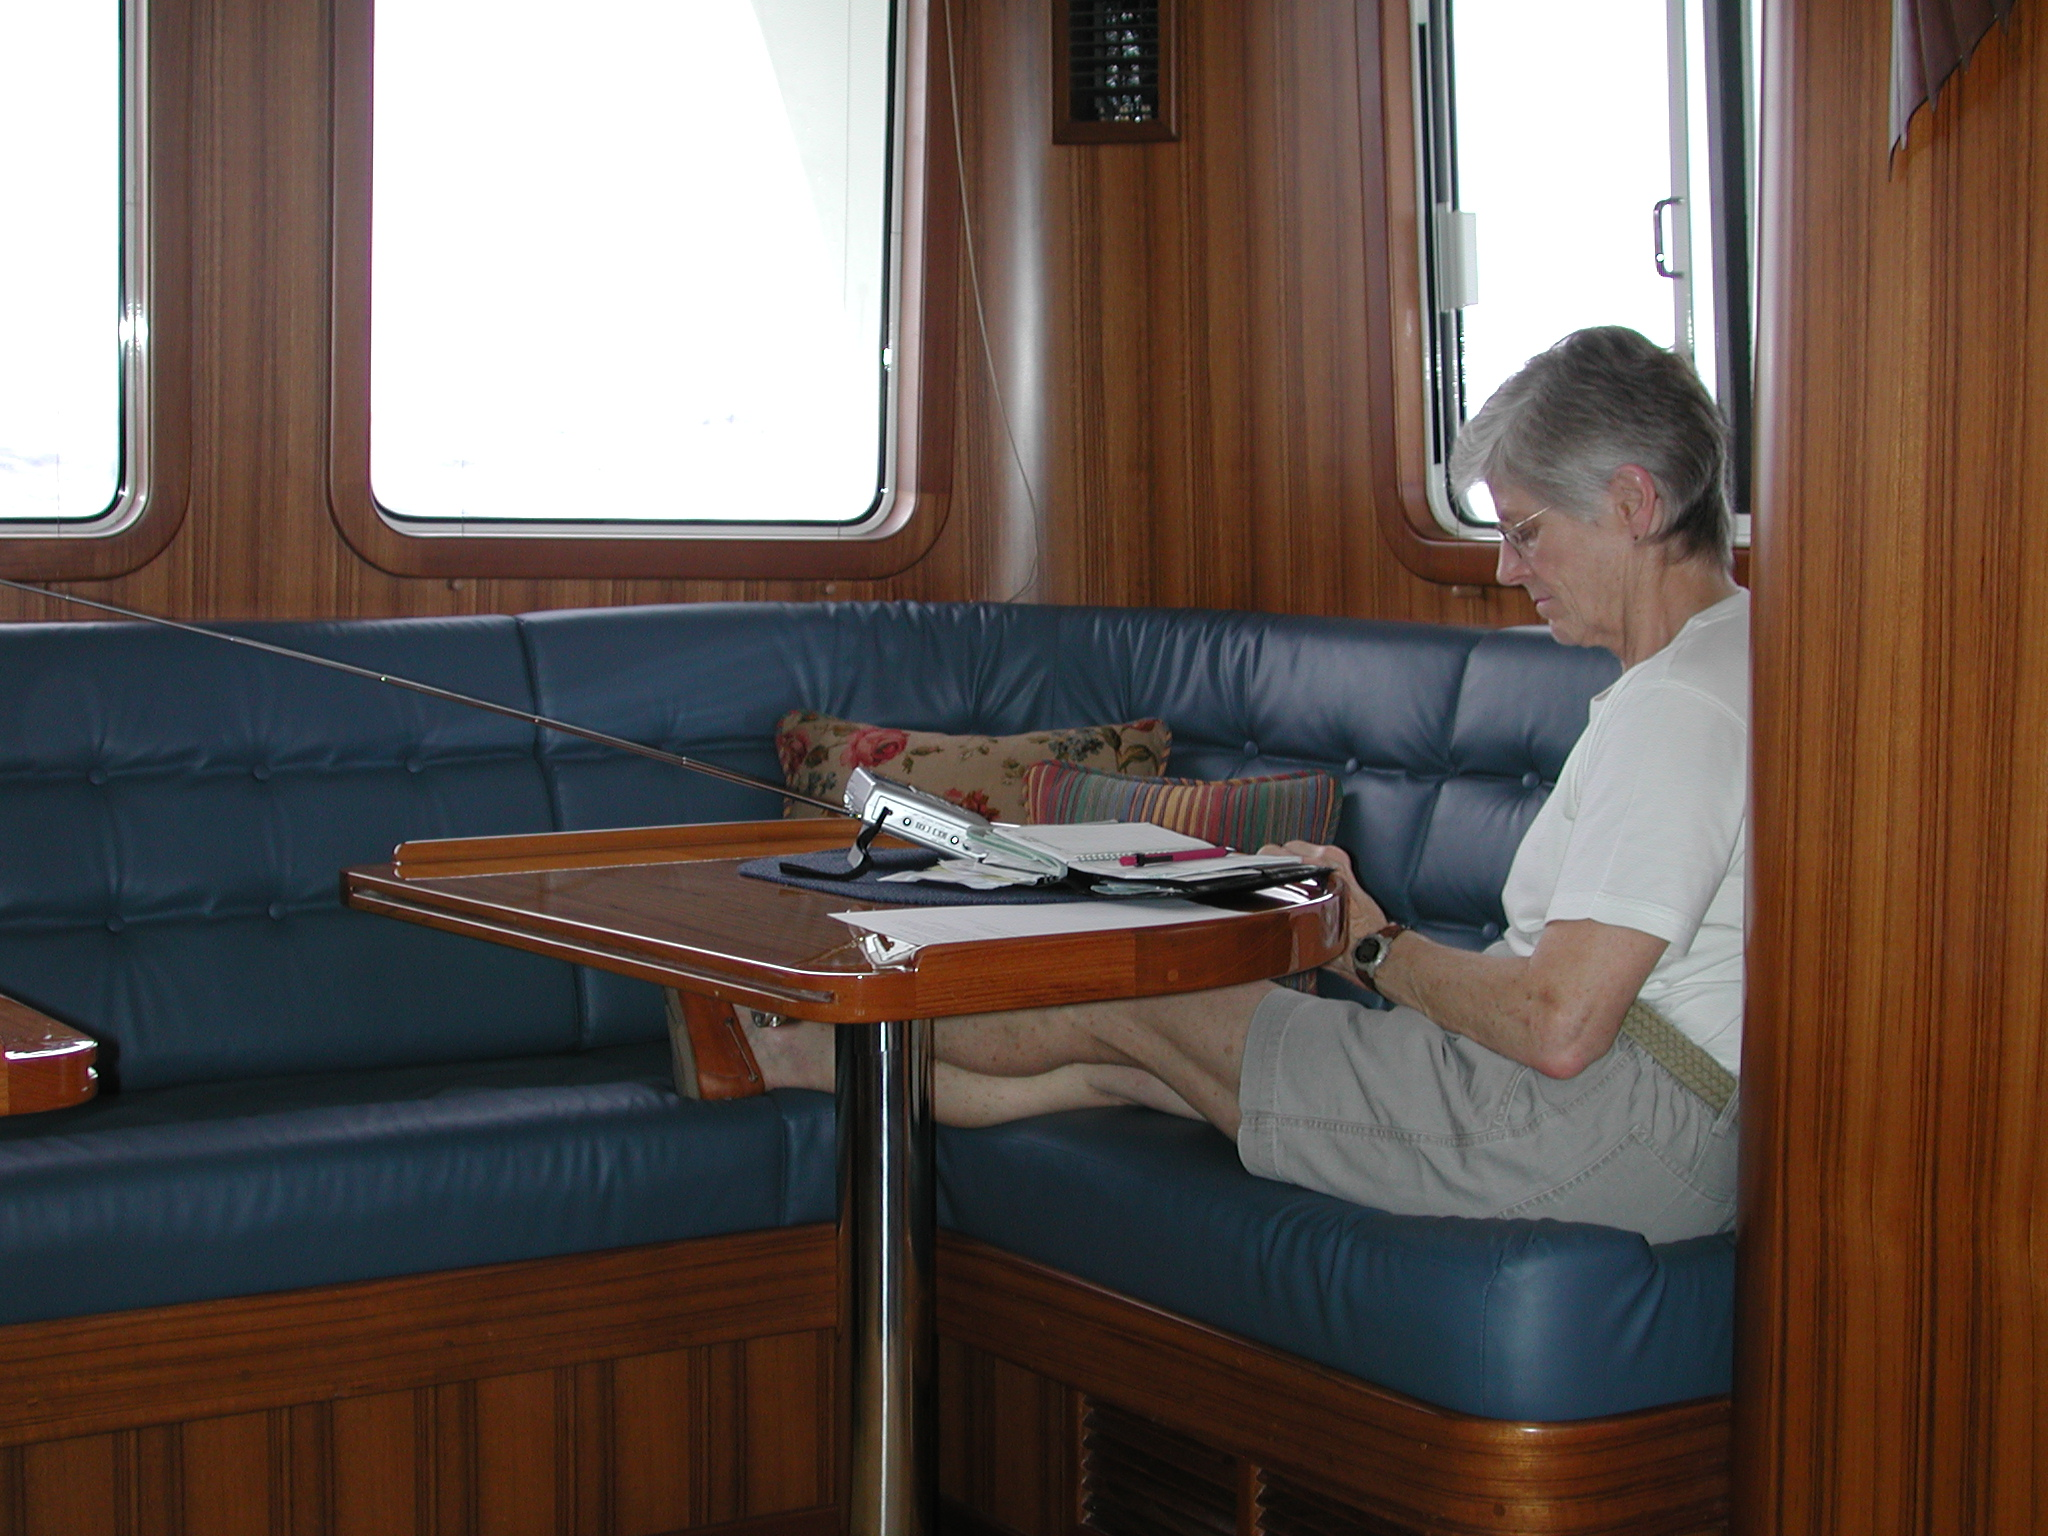 Enjoying quiet time in the pilothouse, away from those on watch, even though the saloon has a couple of wonderful Ekornes Stressless recliner chairs. Unless the saloon door to the cockpit is open, she'd rather be up here.